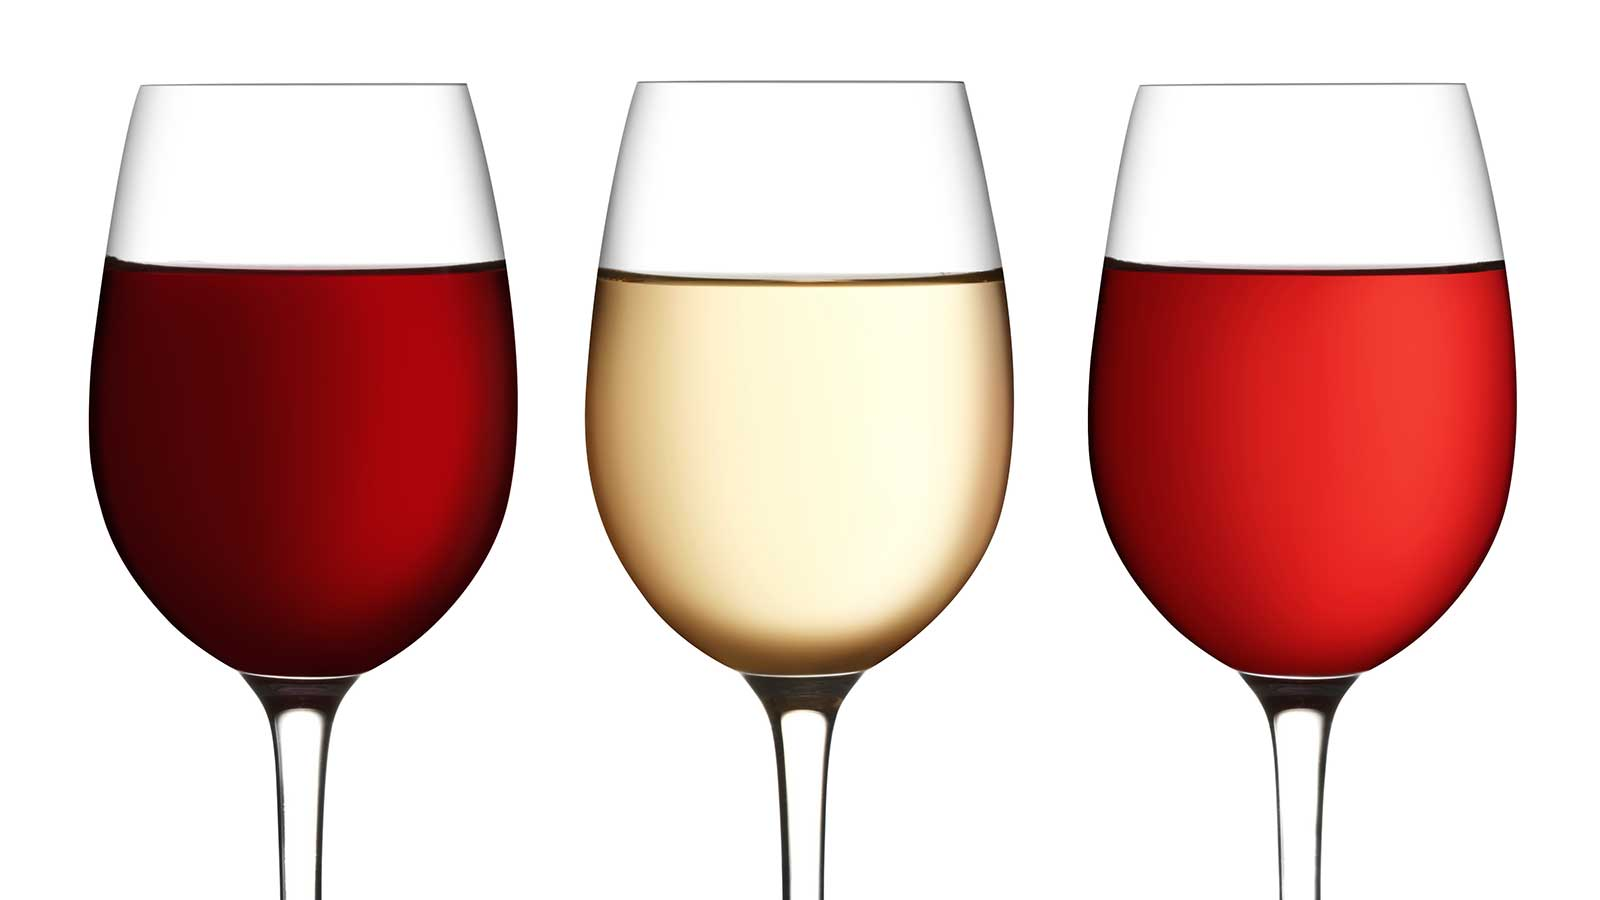 Taste red, pink and white wine